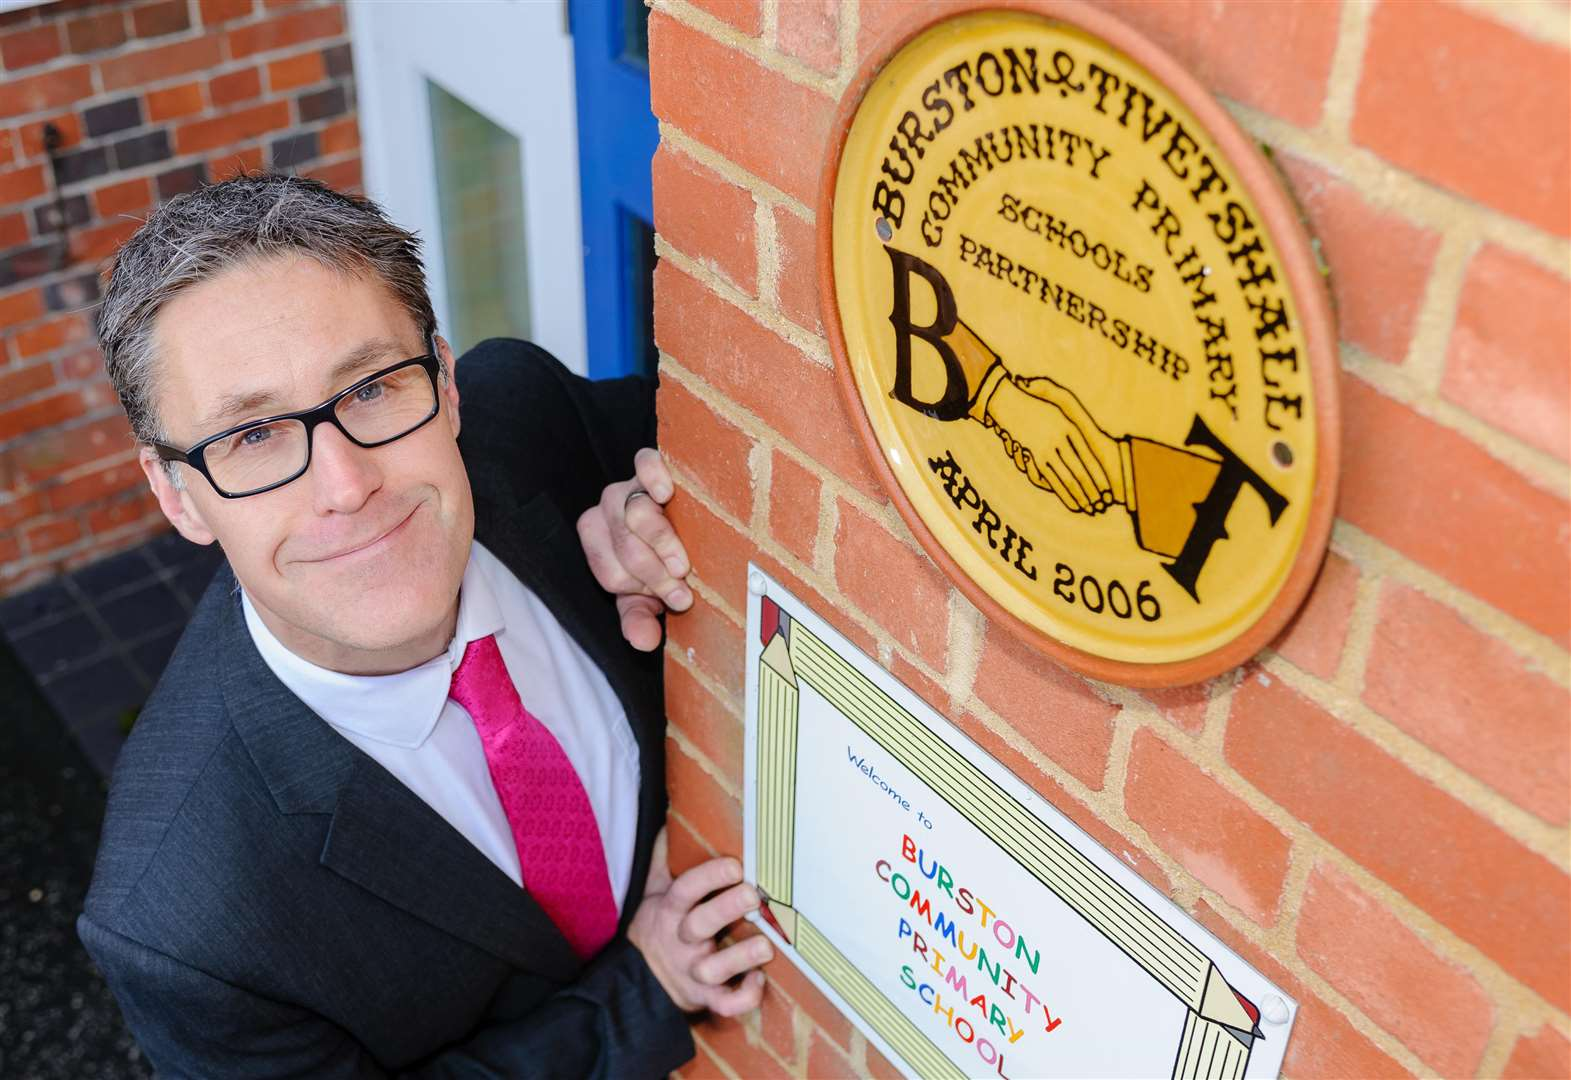 Burston and Tivetshall Primary School welcome new executive headteacher